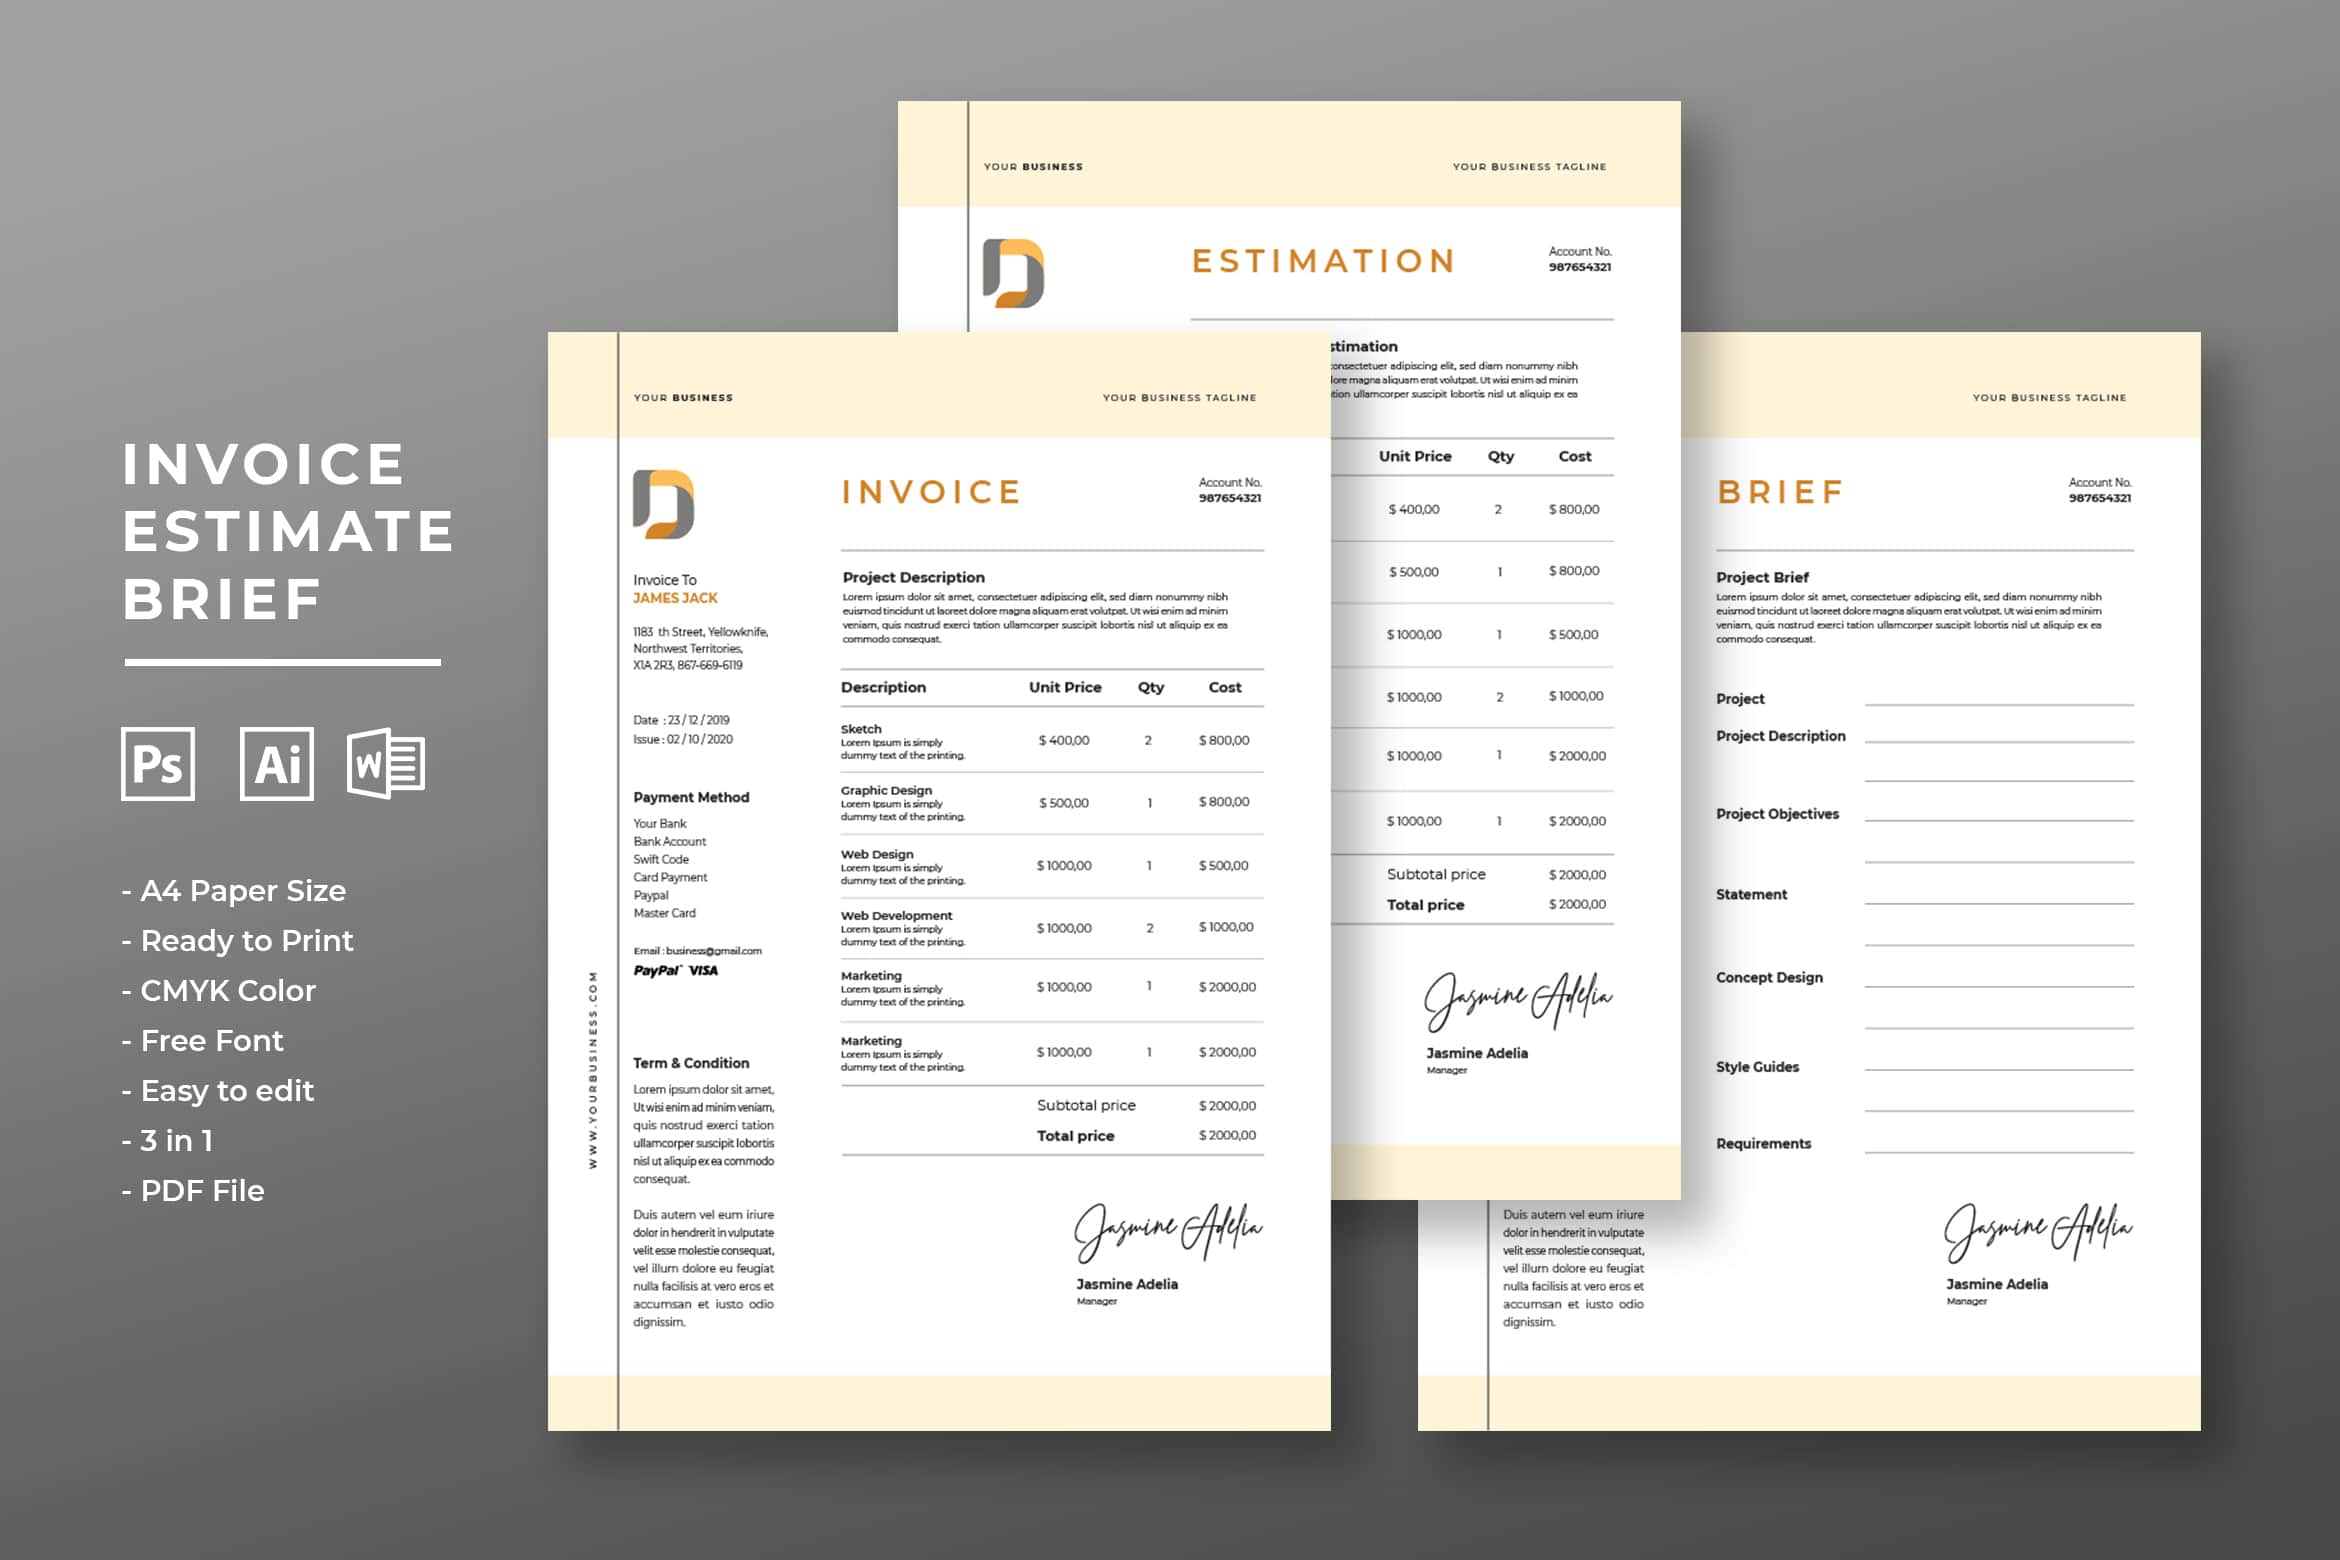 Invoice - Creative Project Services